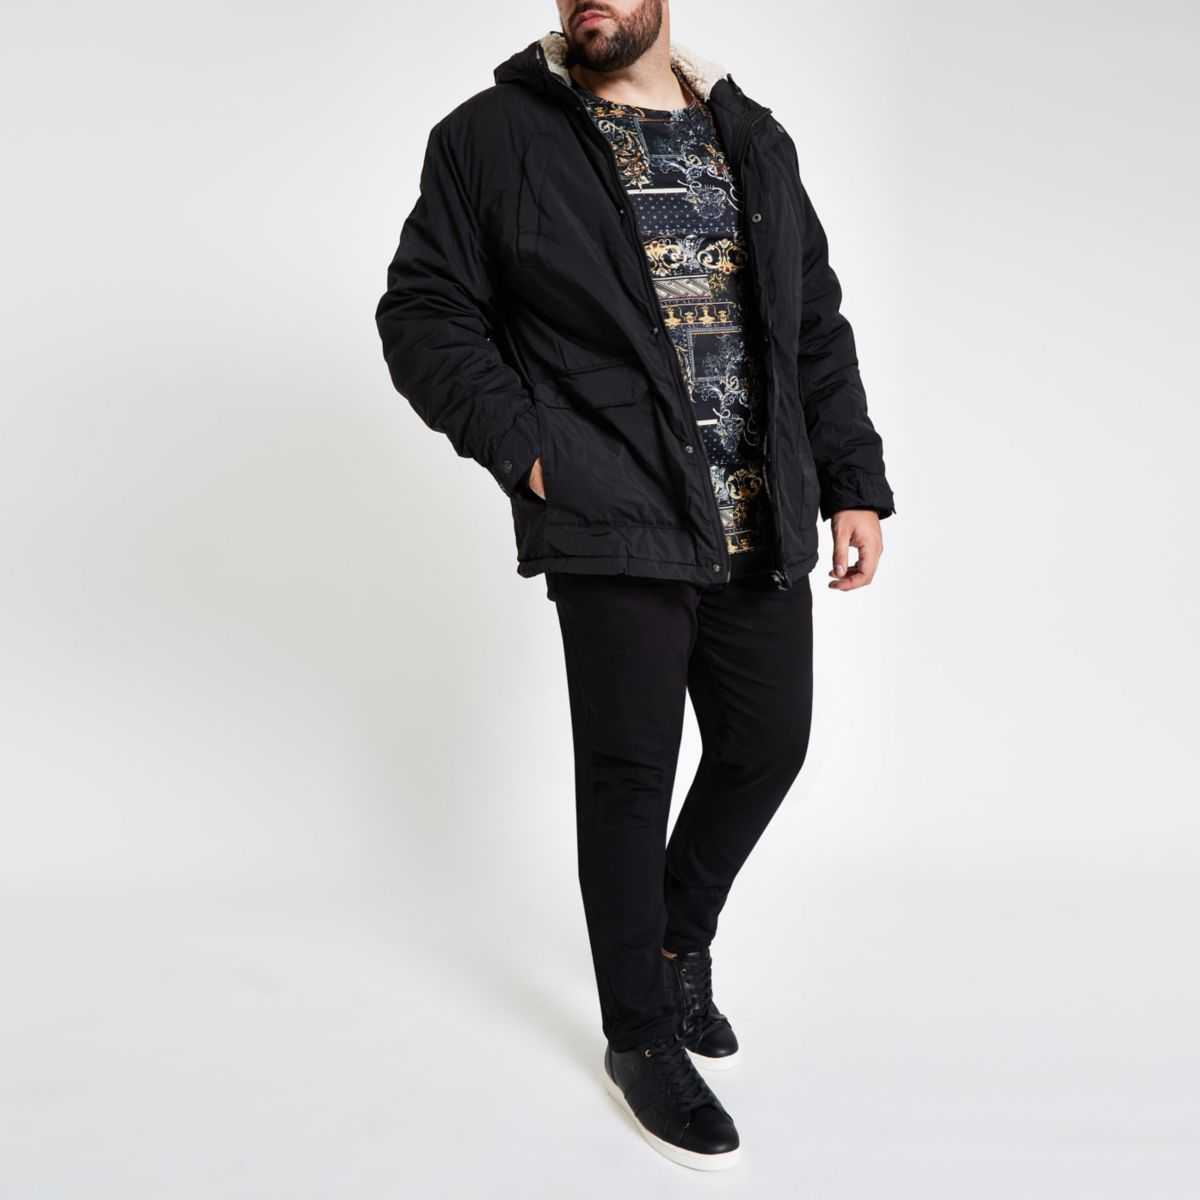 Big & Tall black hooded fleece lined coat